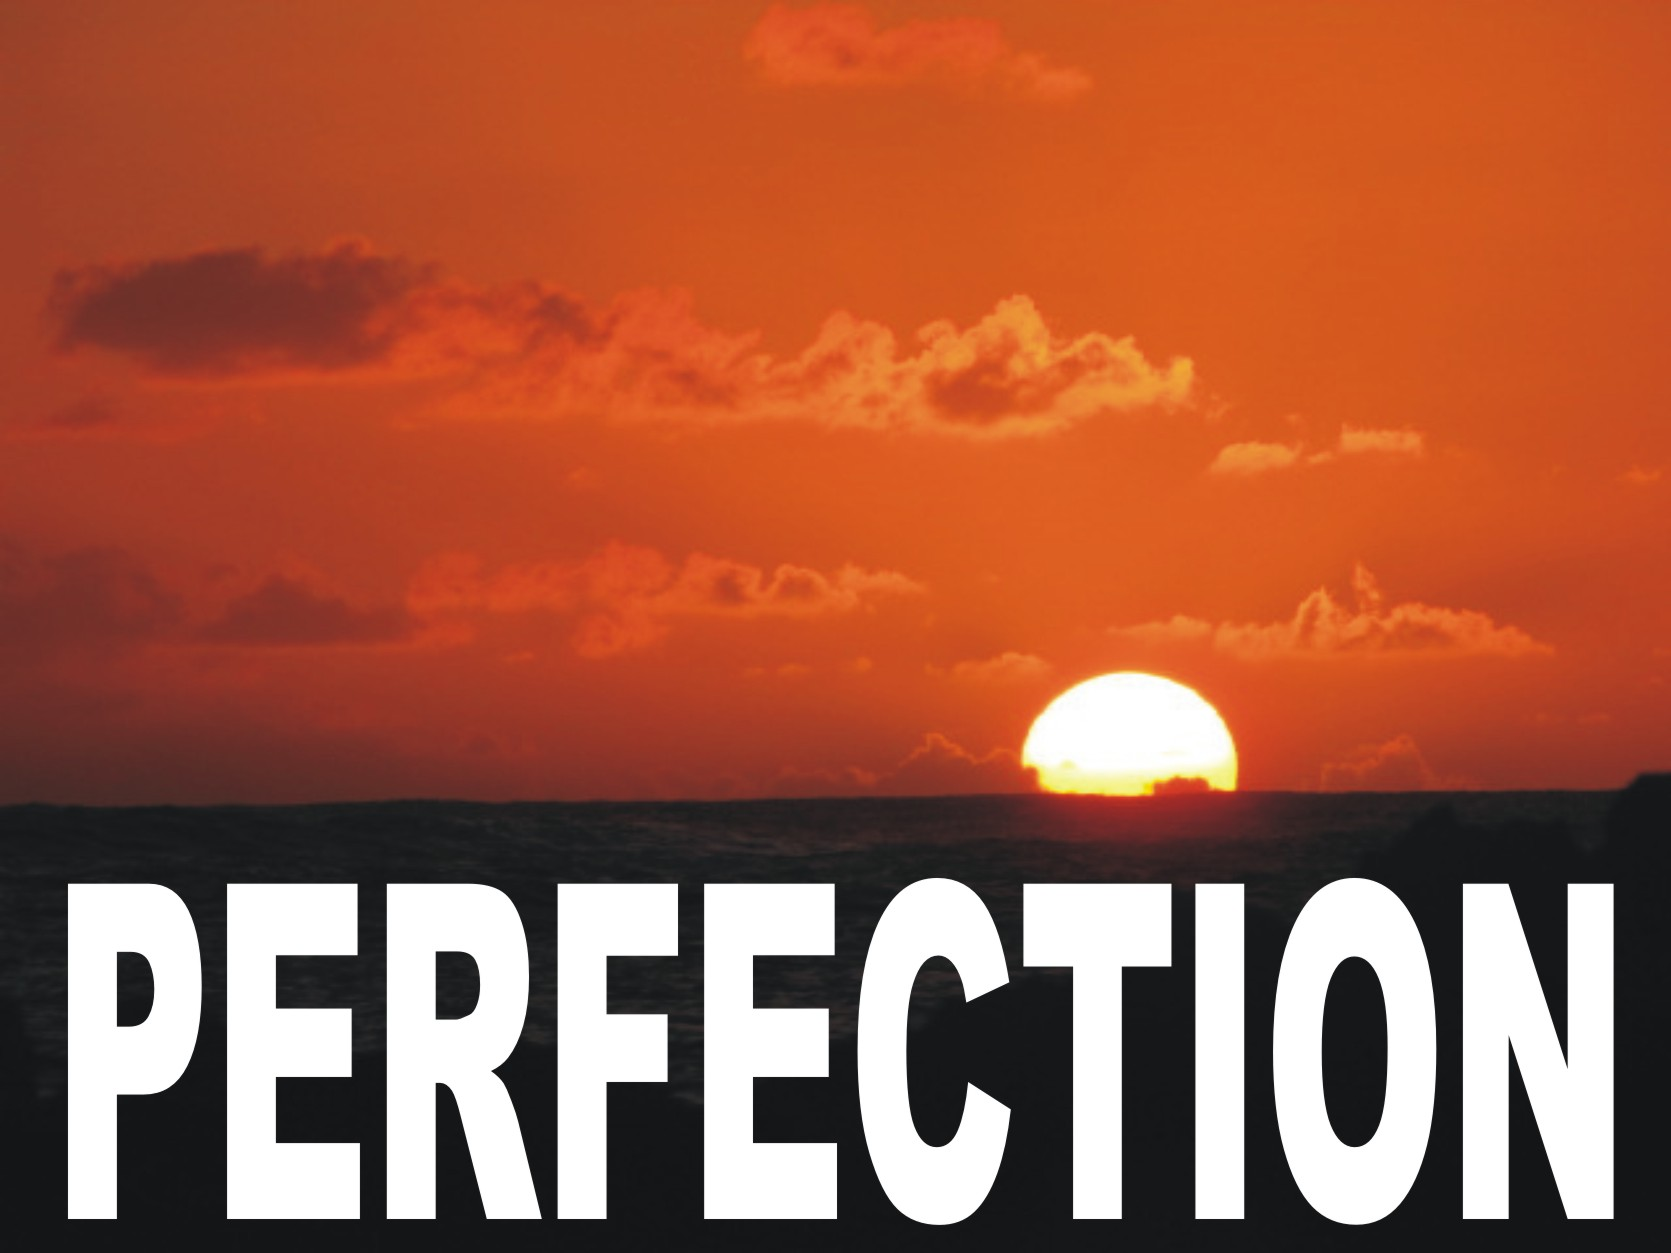 striving for perfection can often lead to suffering the